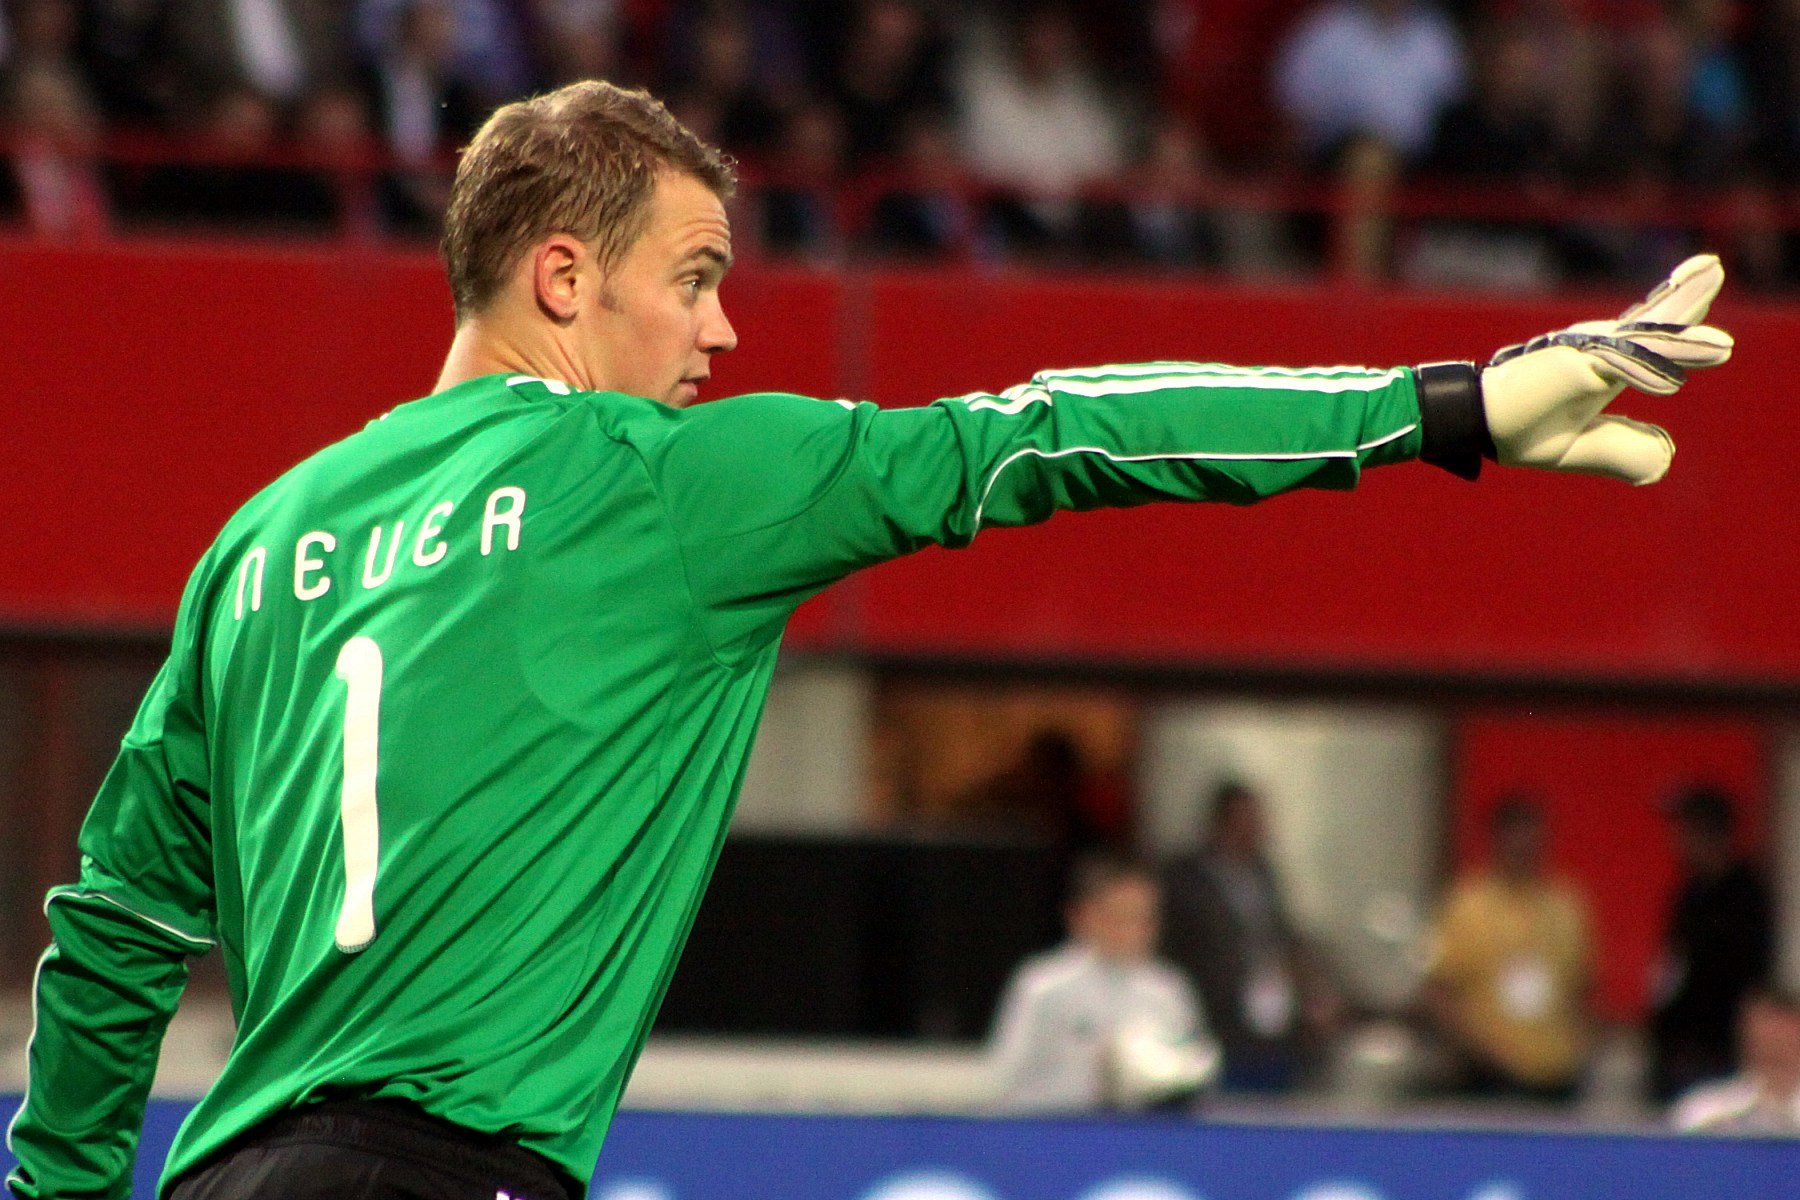 Manuel_Neuer,_Germany_national_football_team_(06)